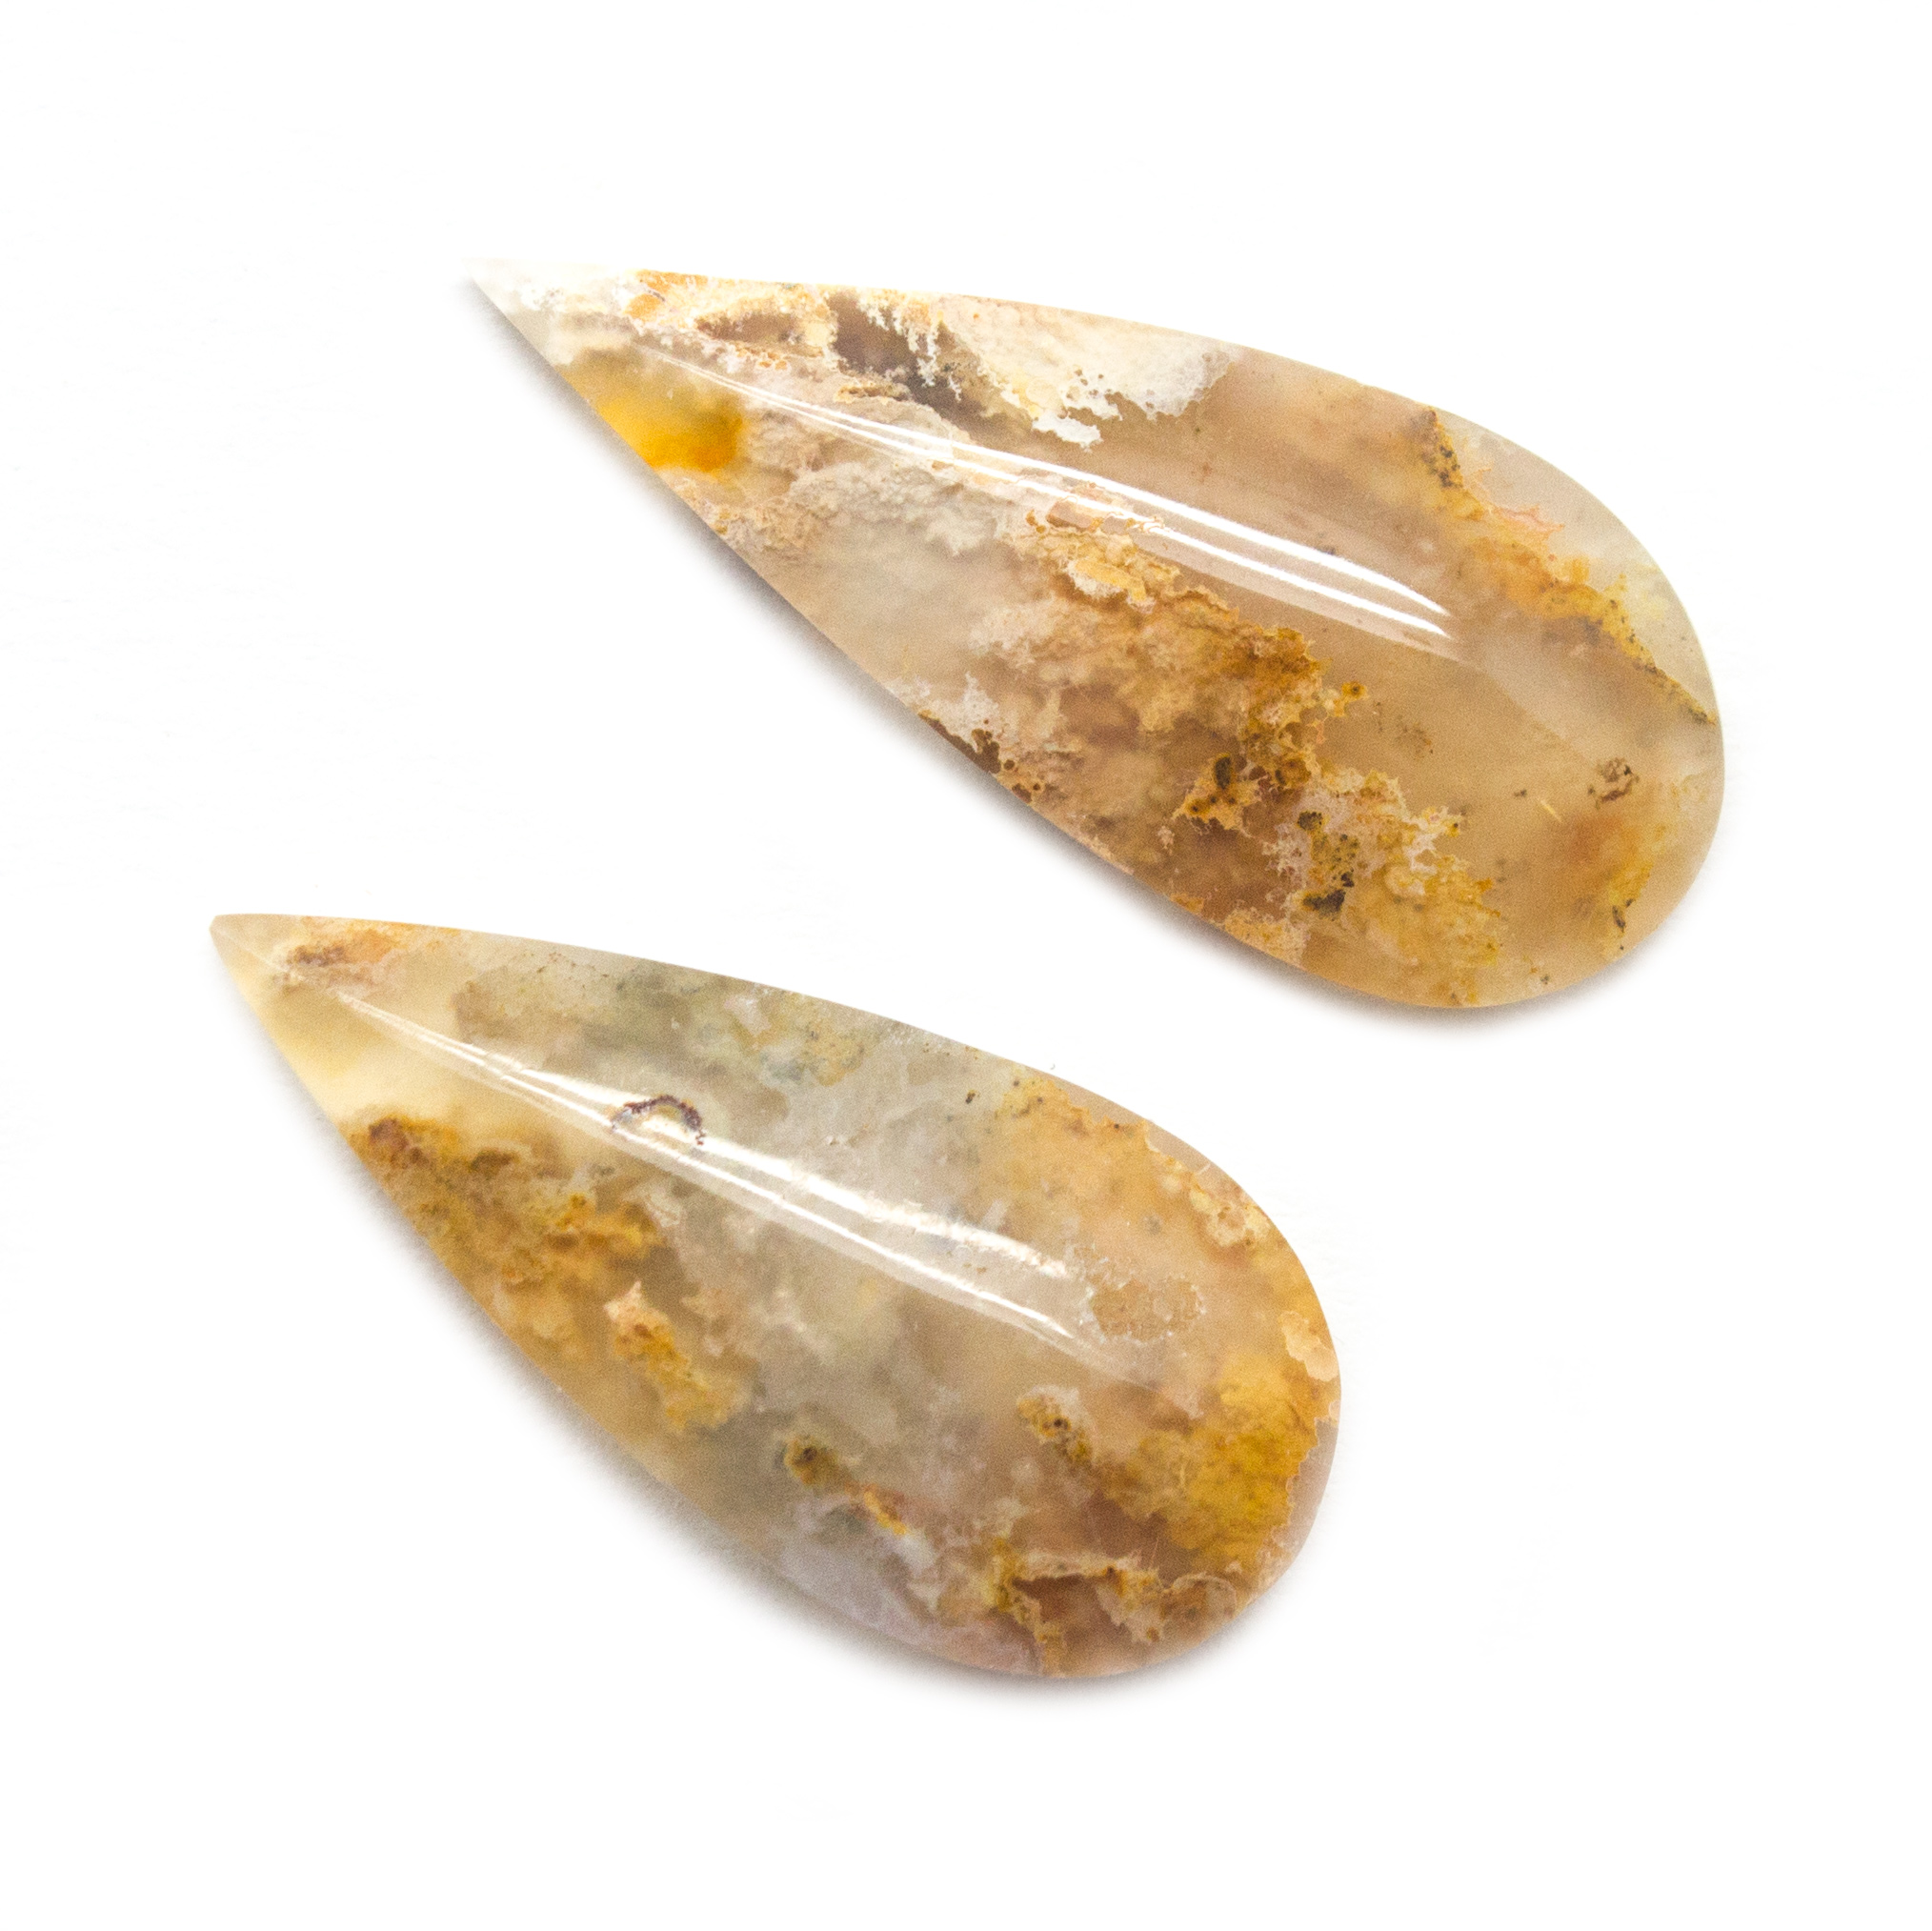 Handcrafted USA Bird Of Paradise Plume Agate Cabochon Natural Gemstone.